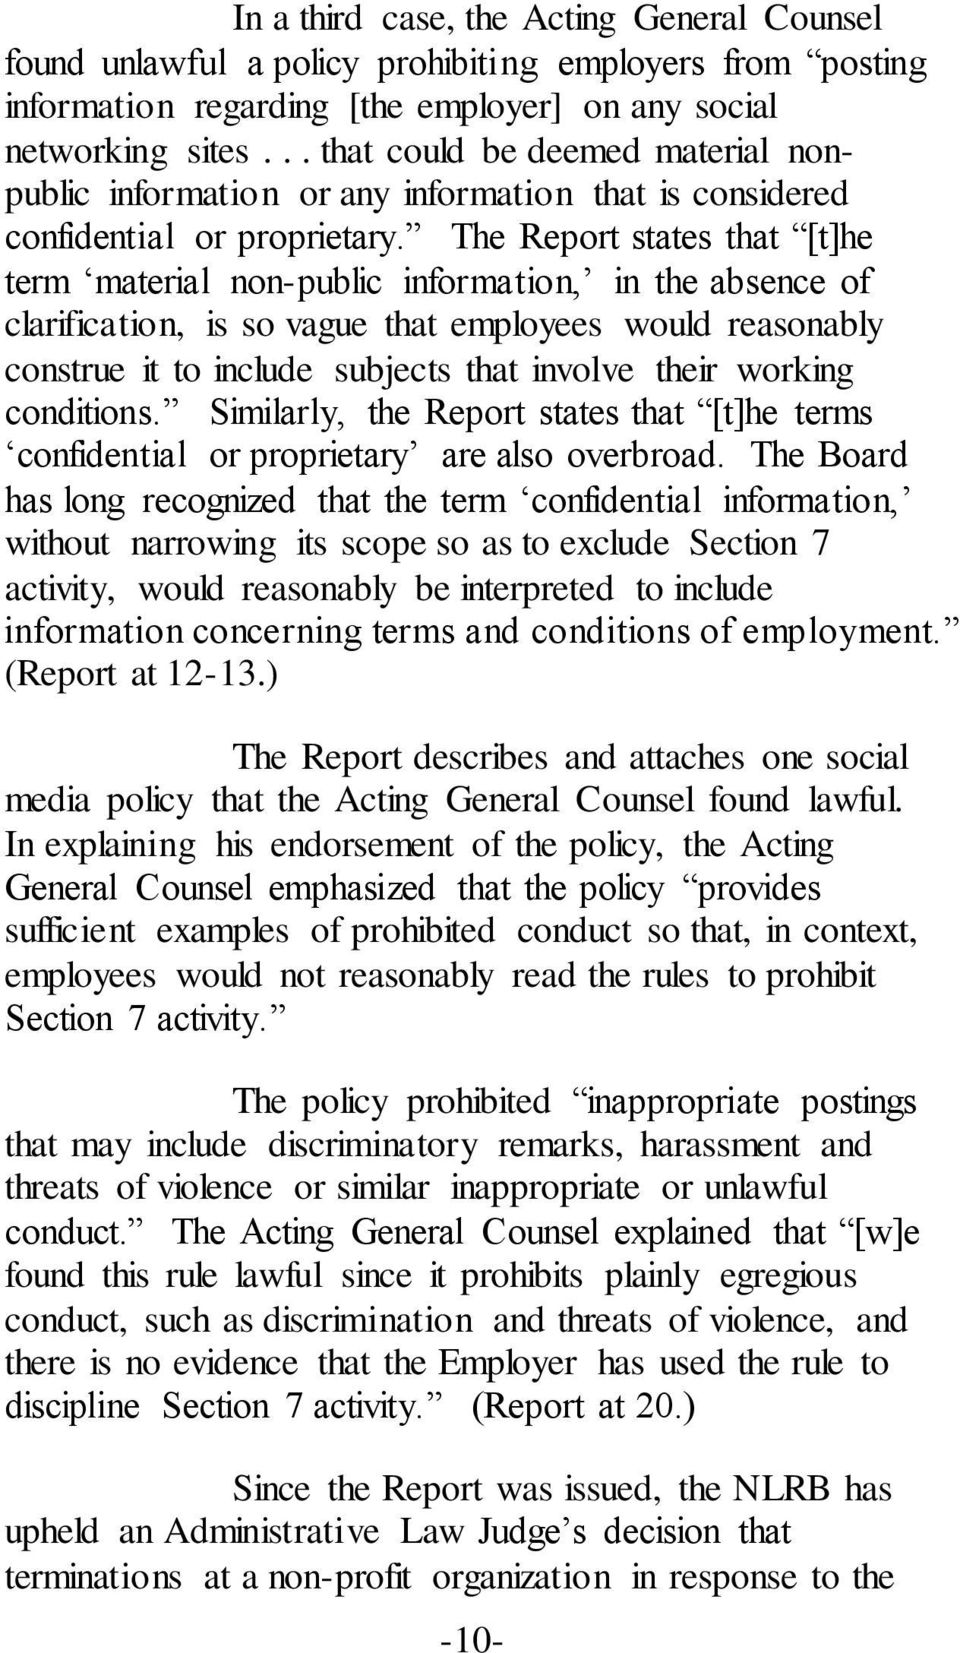 The Report states that [t]he term material non-public information, in the absence of clarification, is so vague that employees would reasonably construe it to include subjects that involve their